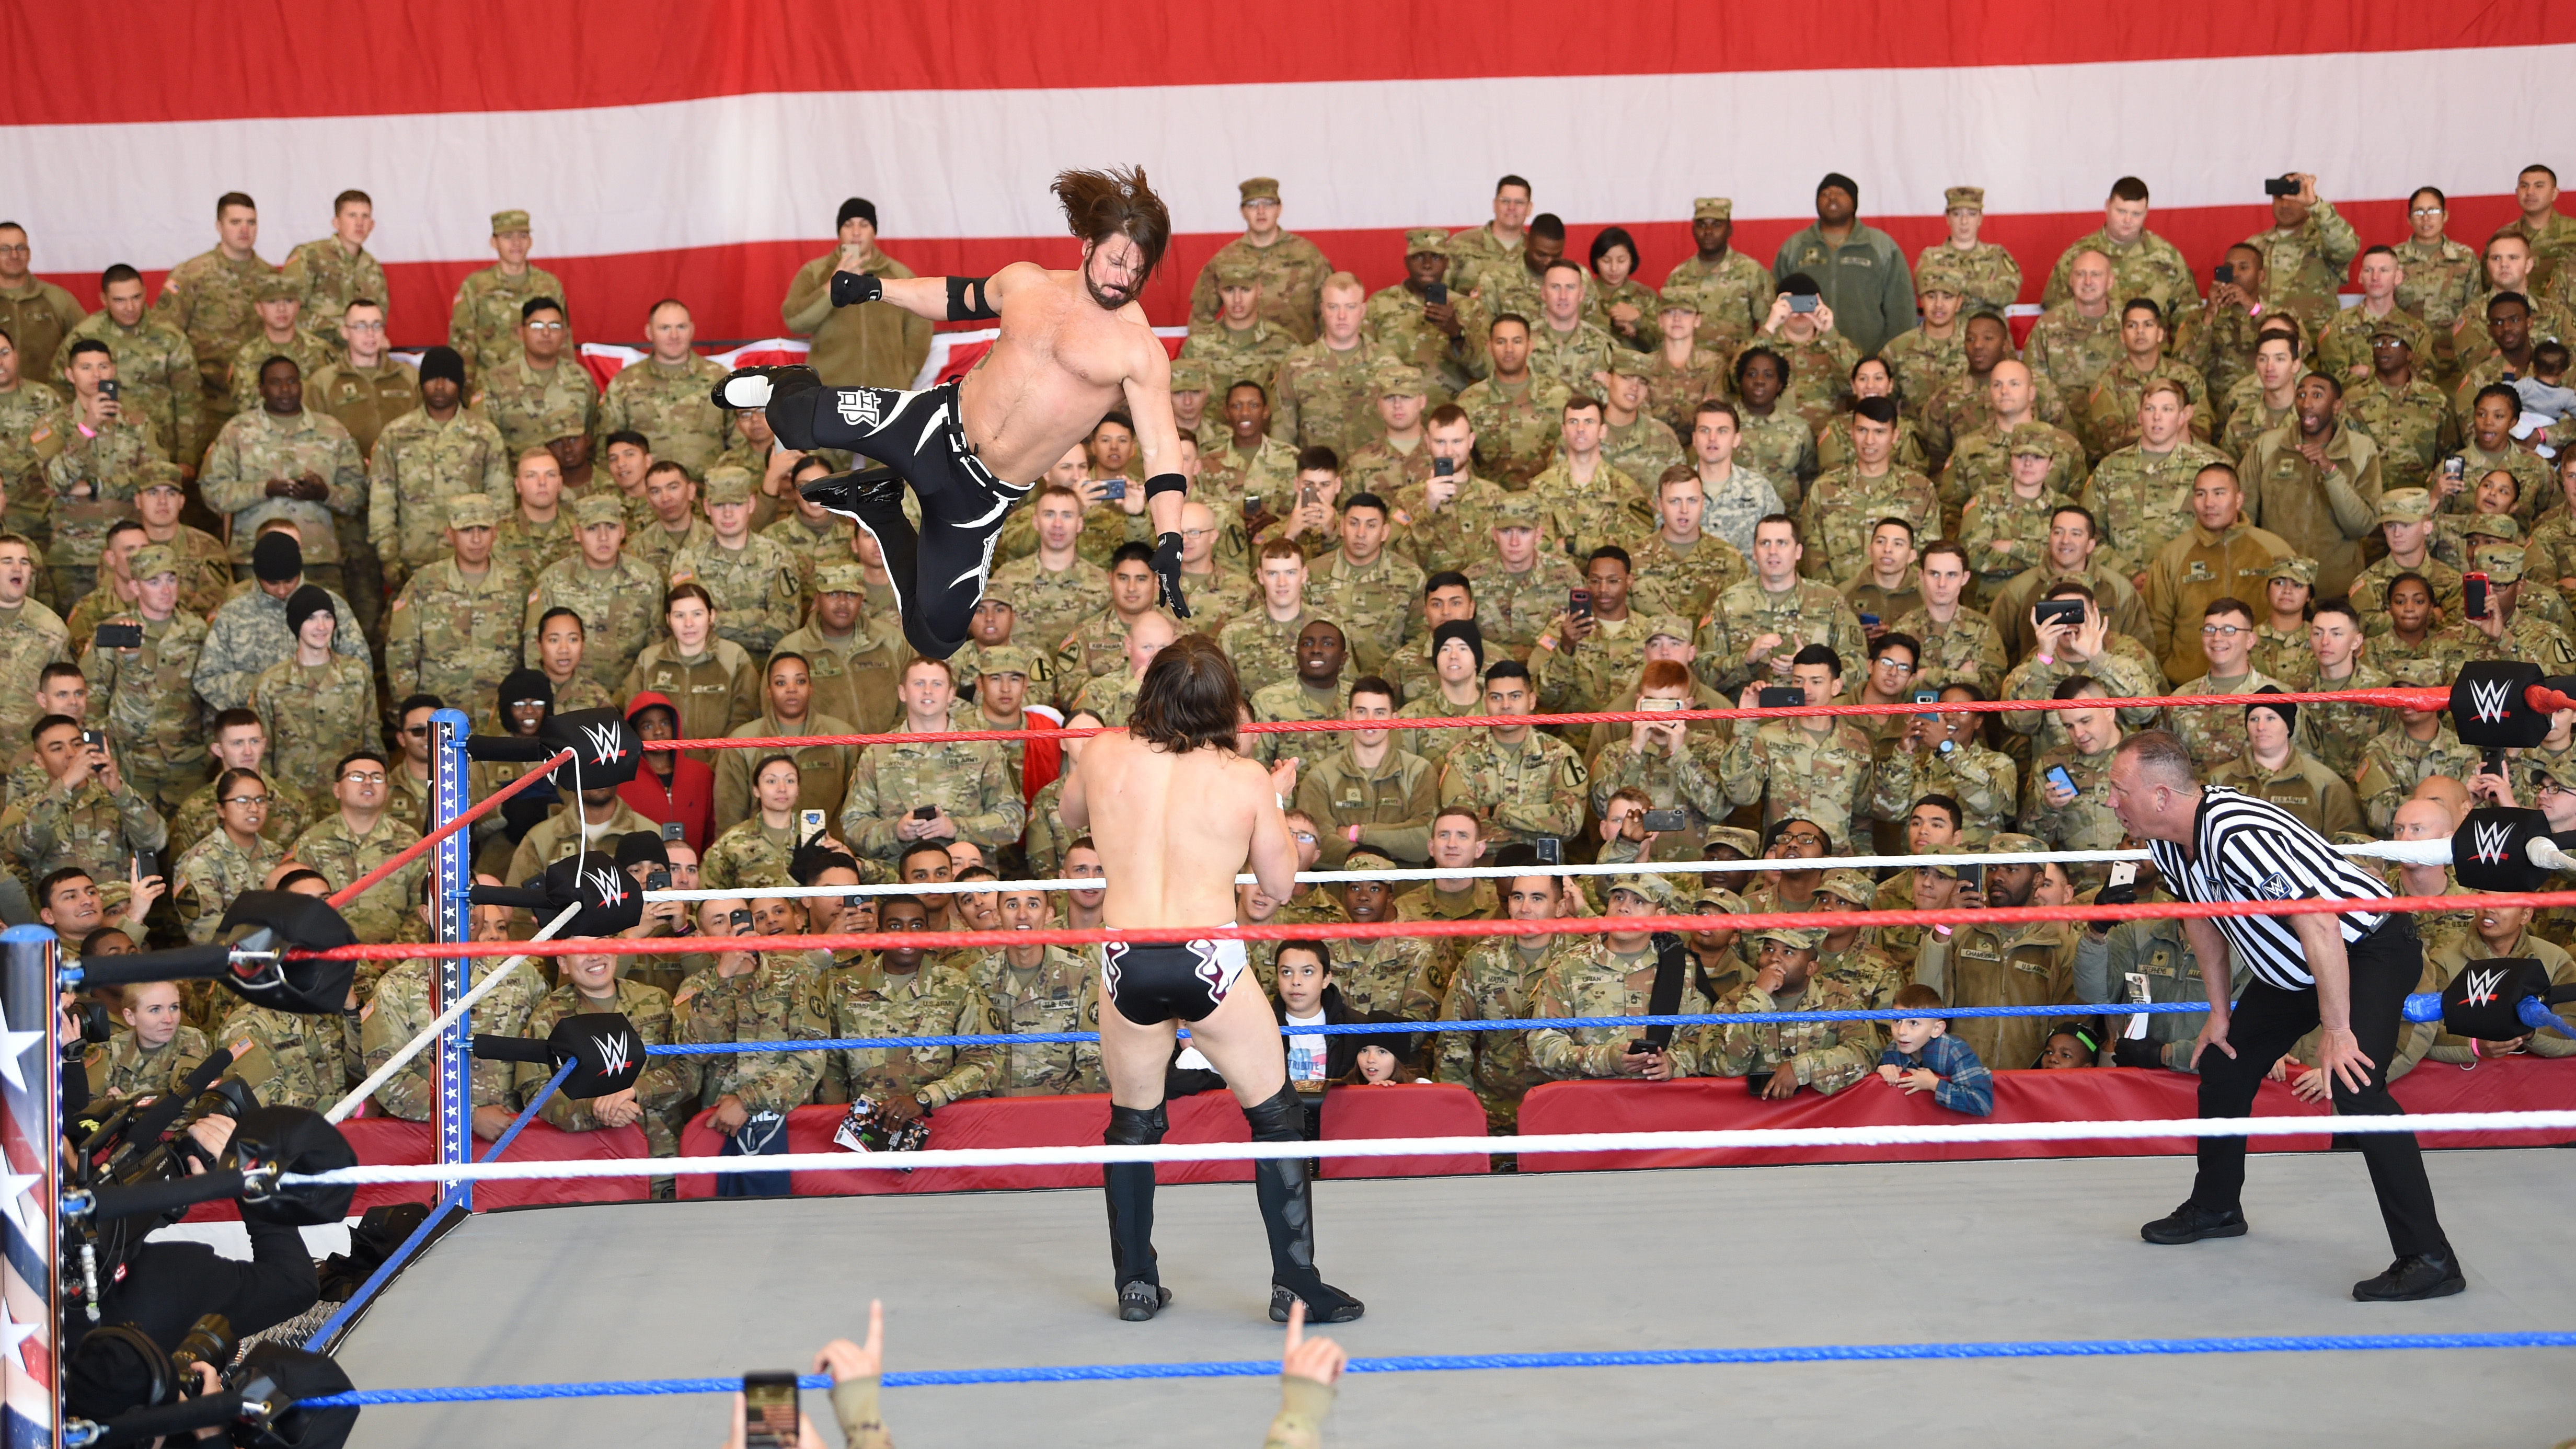 WWE wrestling news: Tribute to the Troops boosts morale